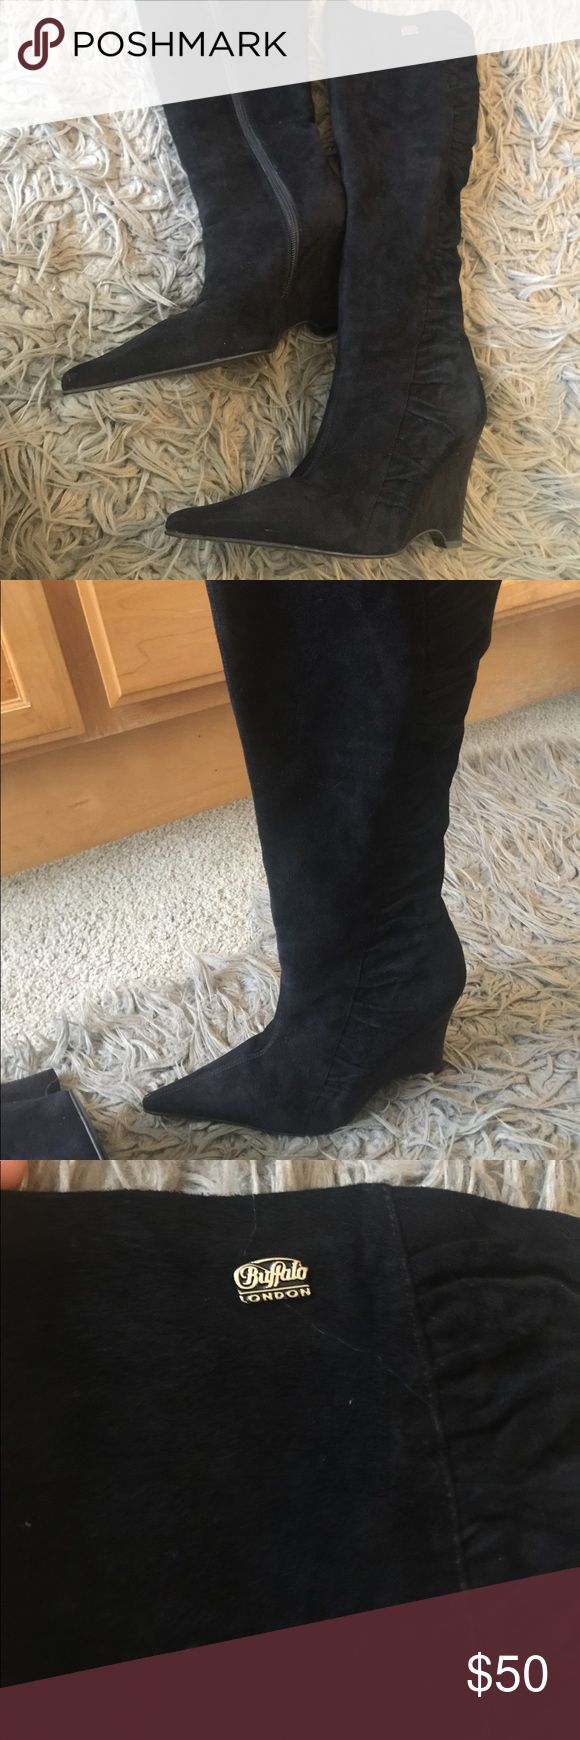 Black suede boots Black suede Buffalo London boots an famous brand from Europe! In excellent condition! Size 38 Buffalo David Bitton Shoes Over the Knee Boots